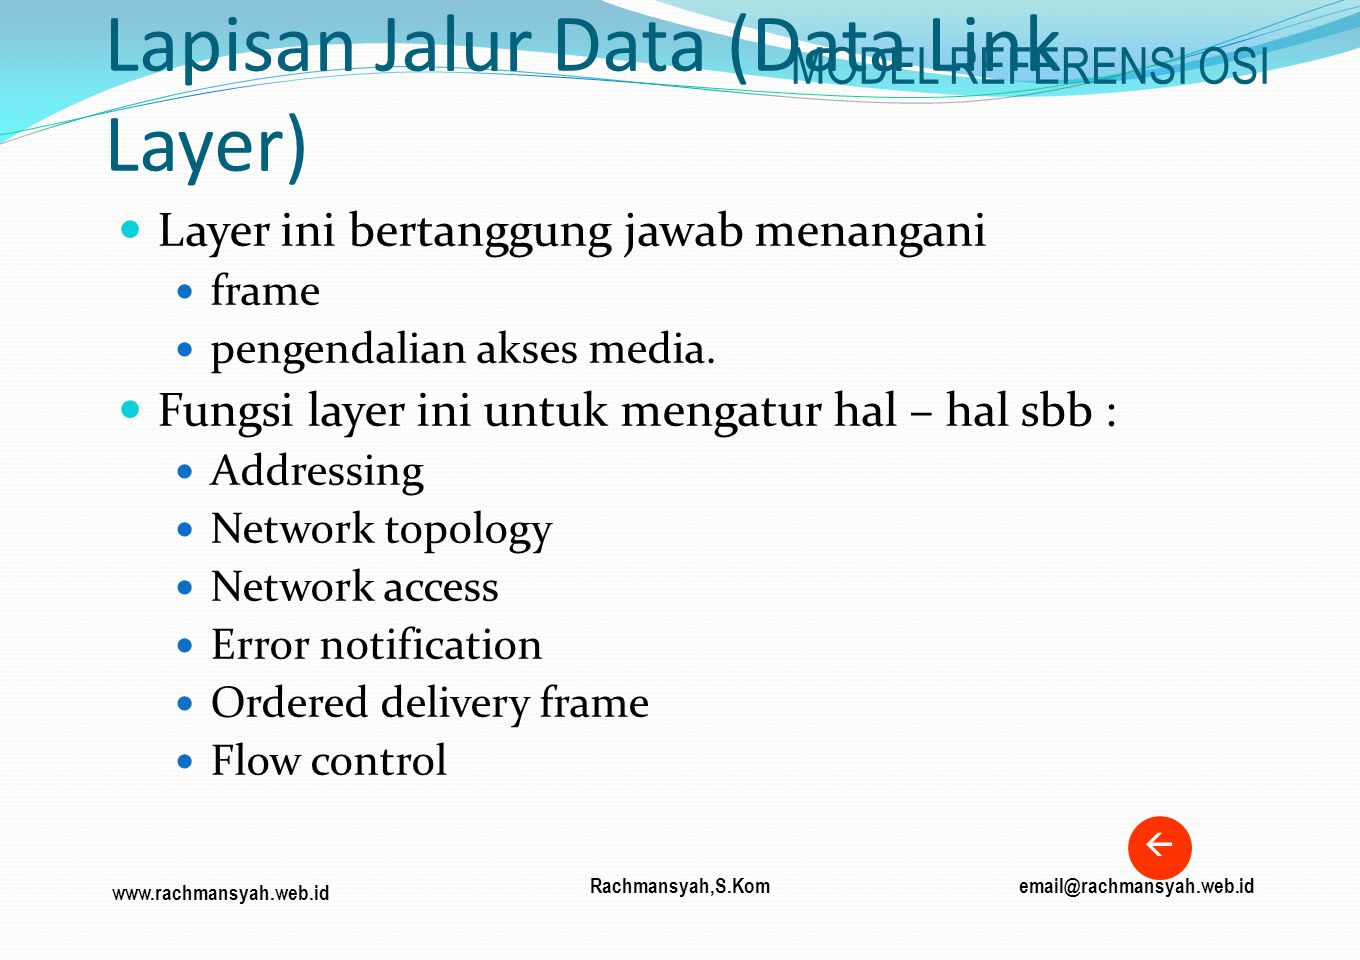 Lapisan Jalur Data (Data Link Layer)